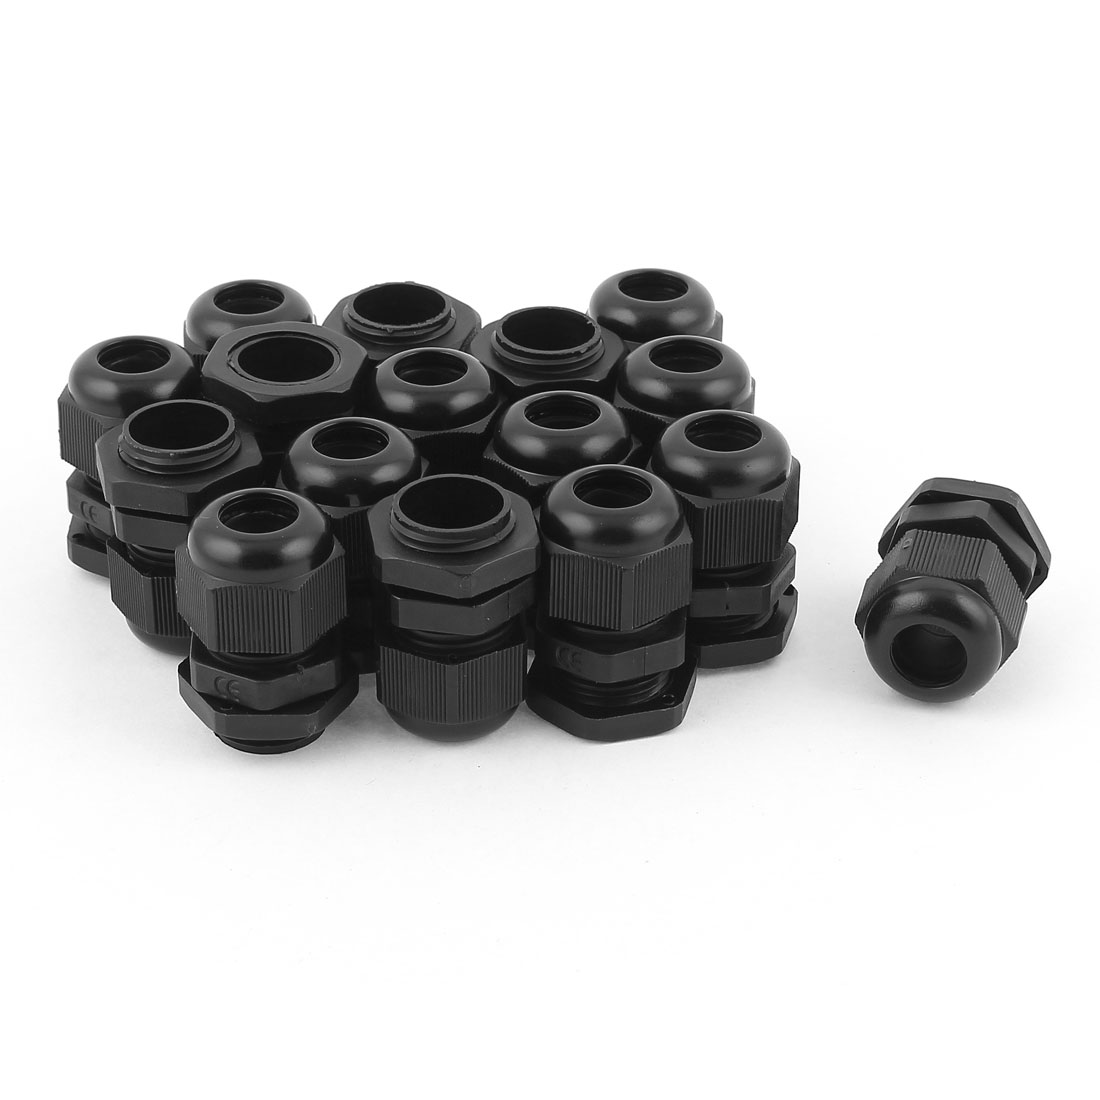 16pcs PG11 Waterproof Cable Glands Plastic Connector for 5-10 mm Dia Wire